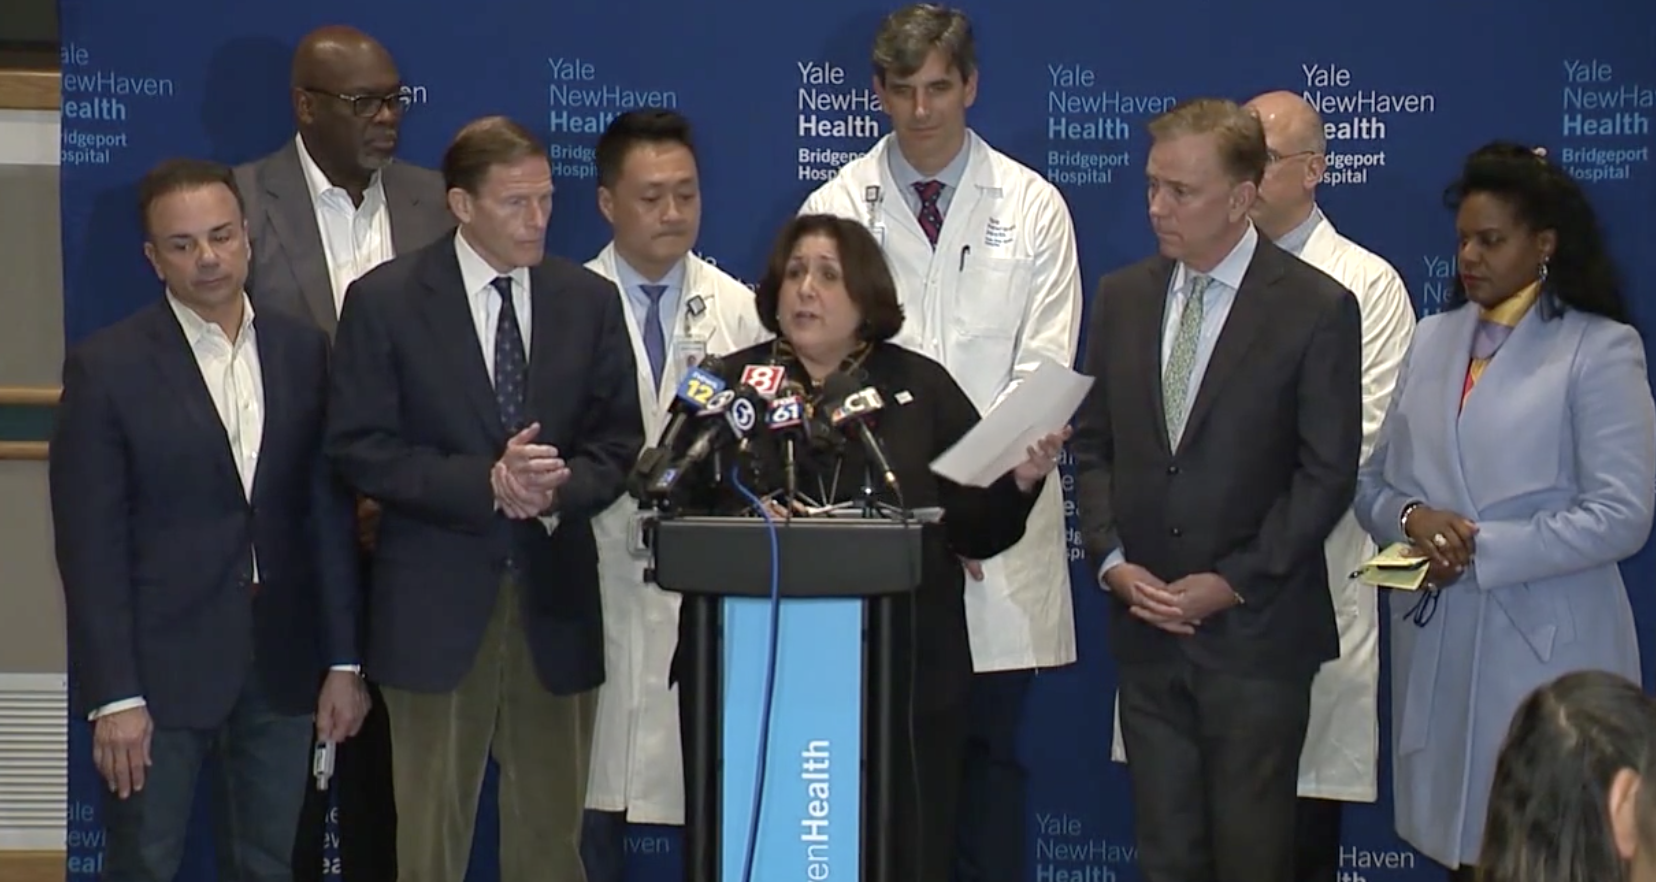 Doctor who made rounds at Bridgeport Hospital has tested positive for COVID-19